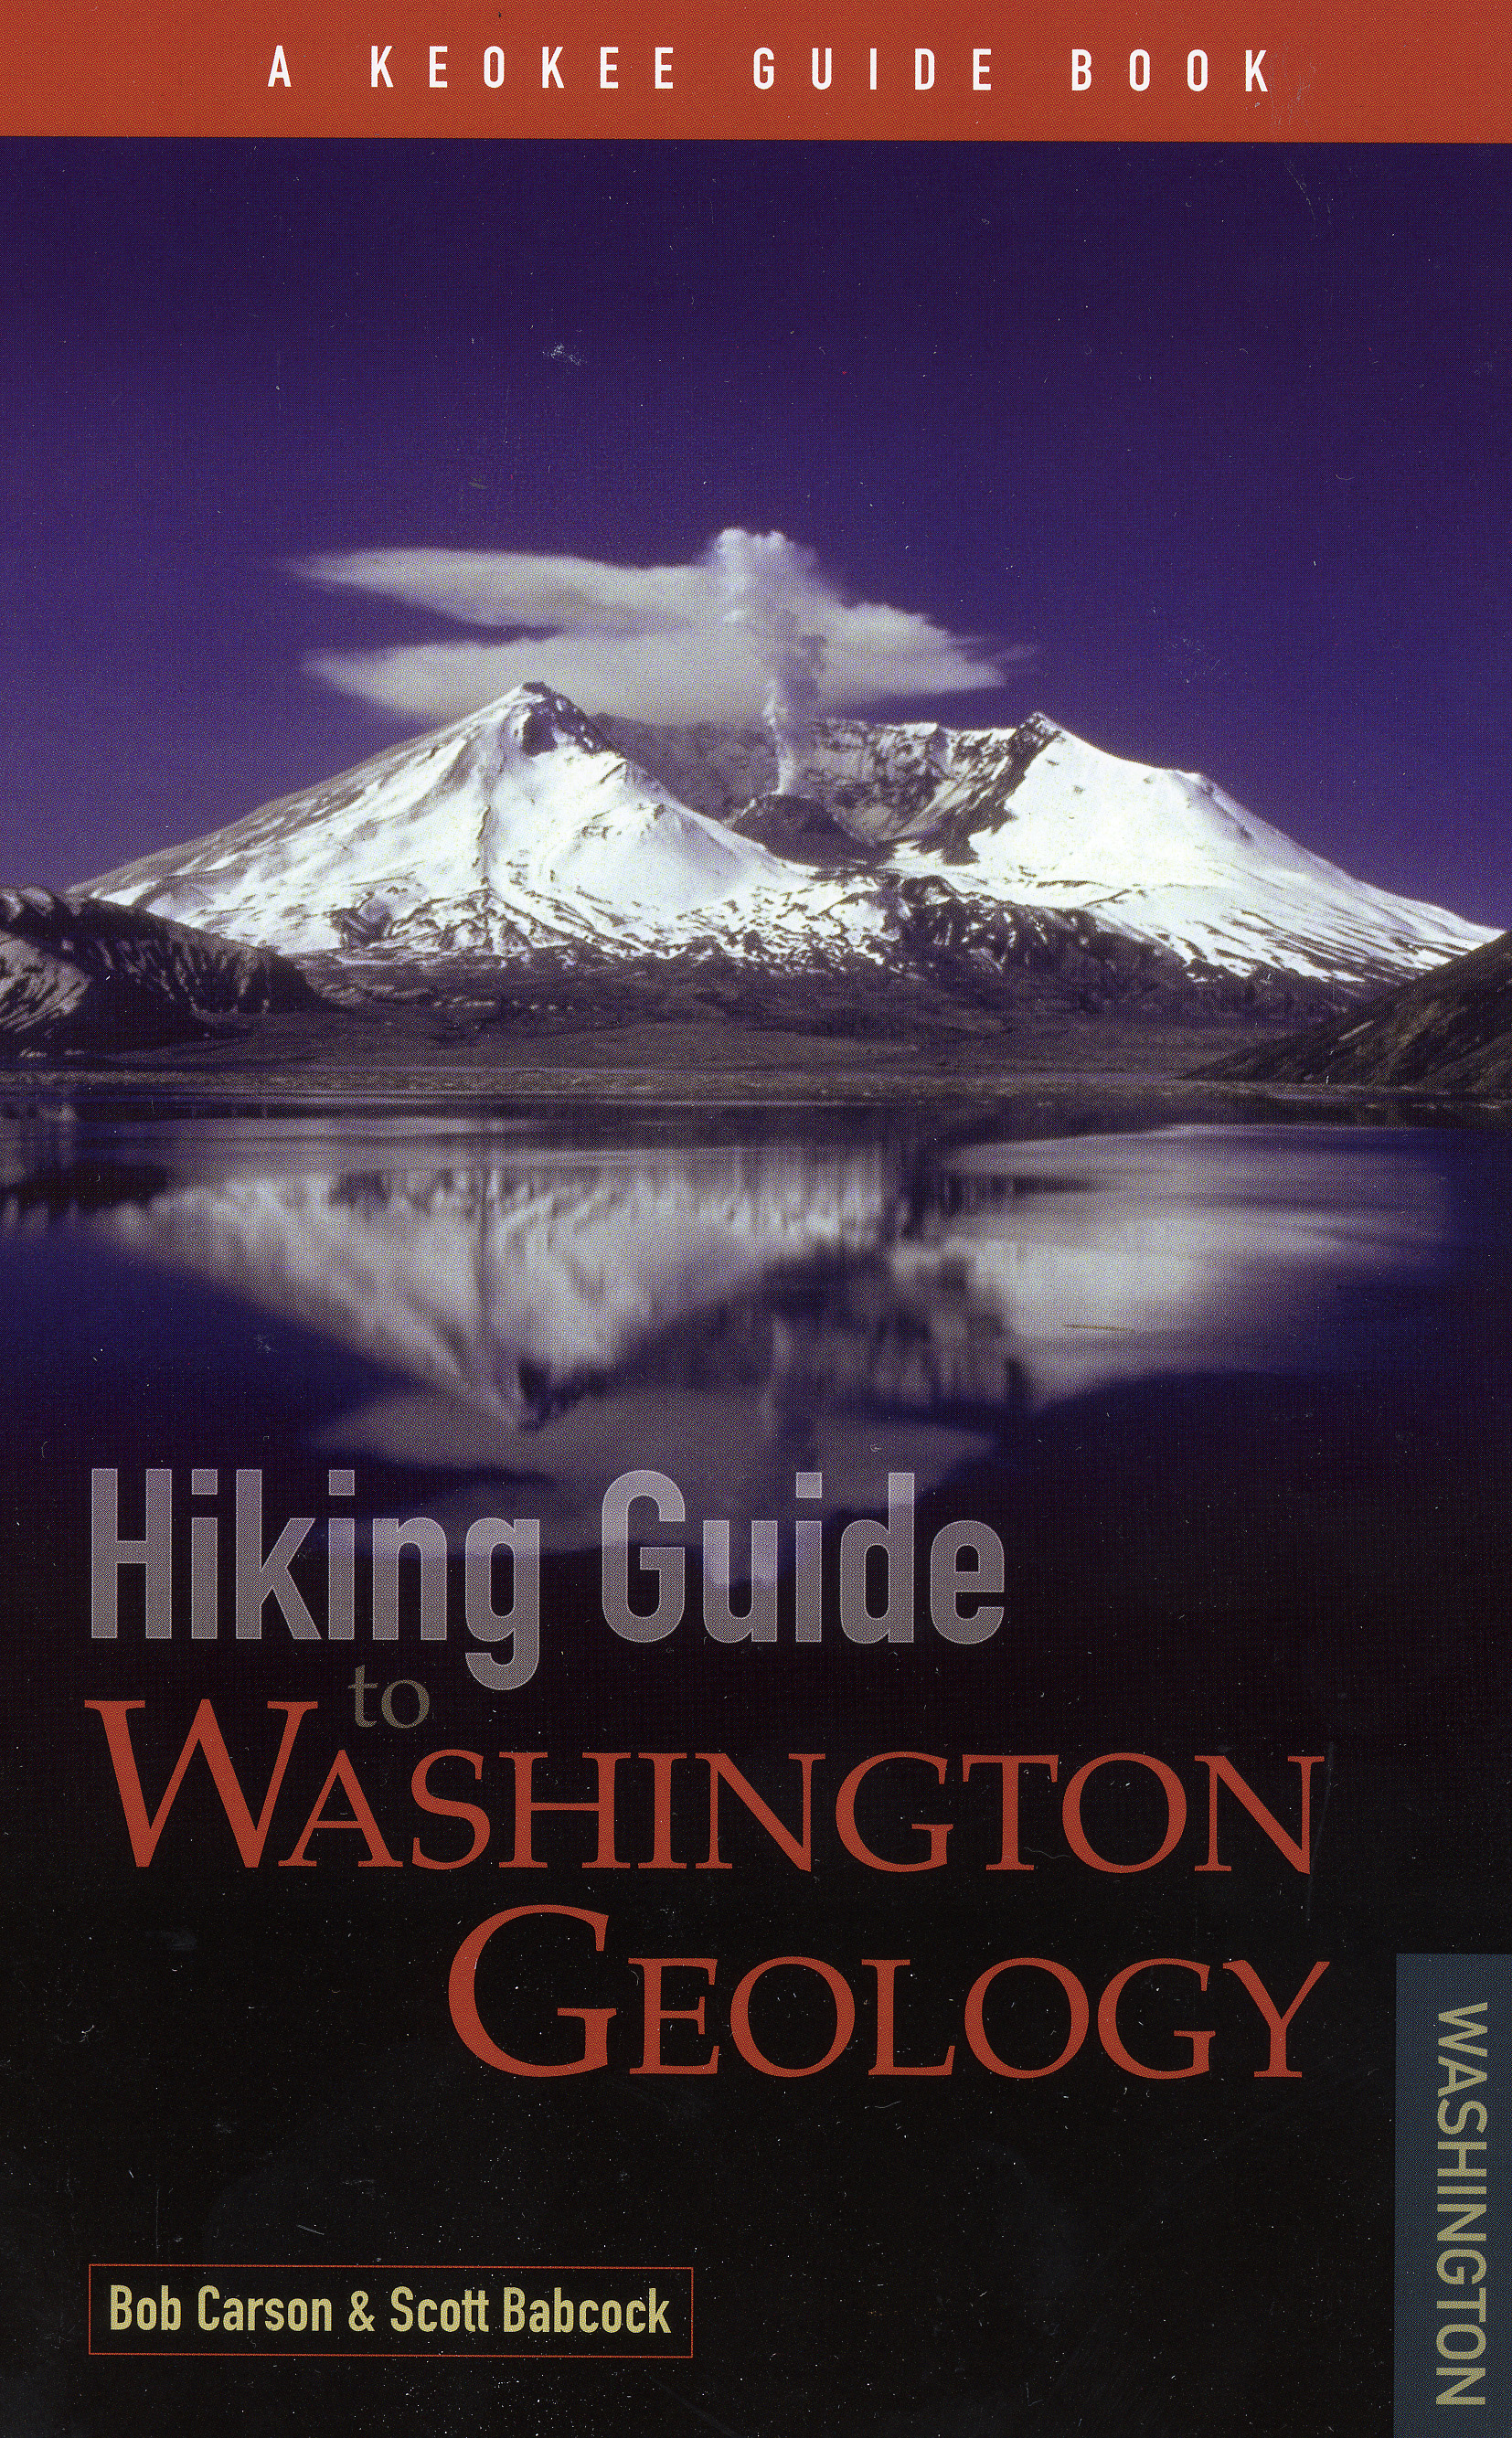 Hiking Guide WA geology